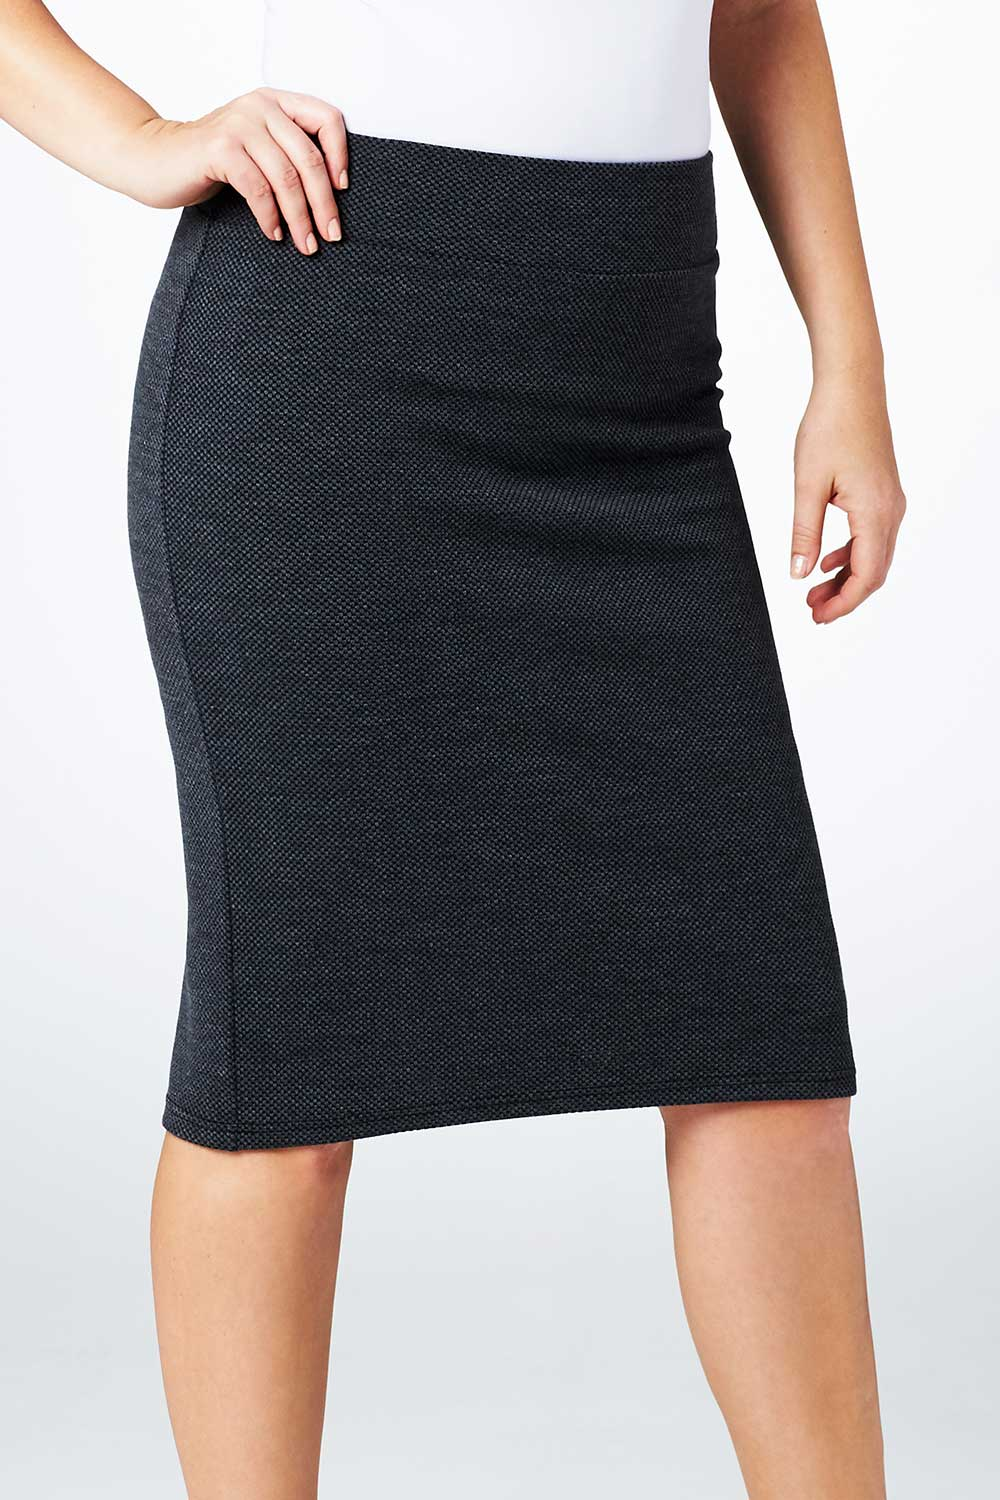 Belle Grey Textured Skirt